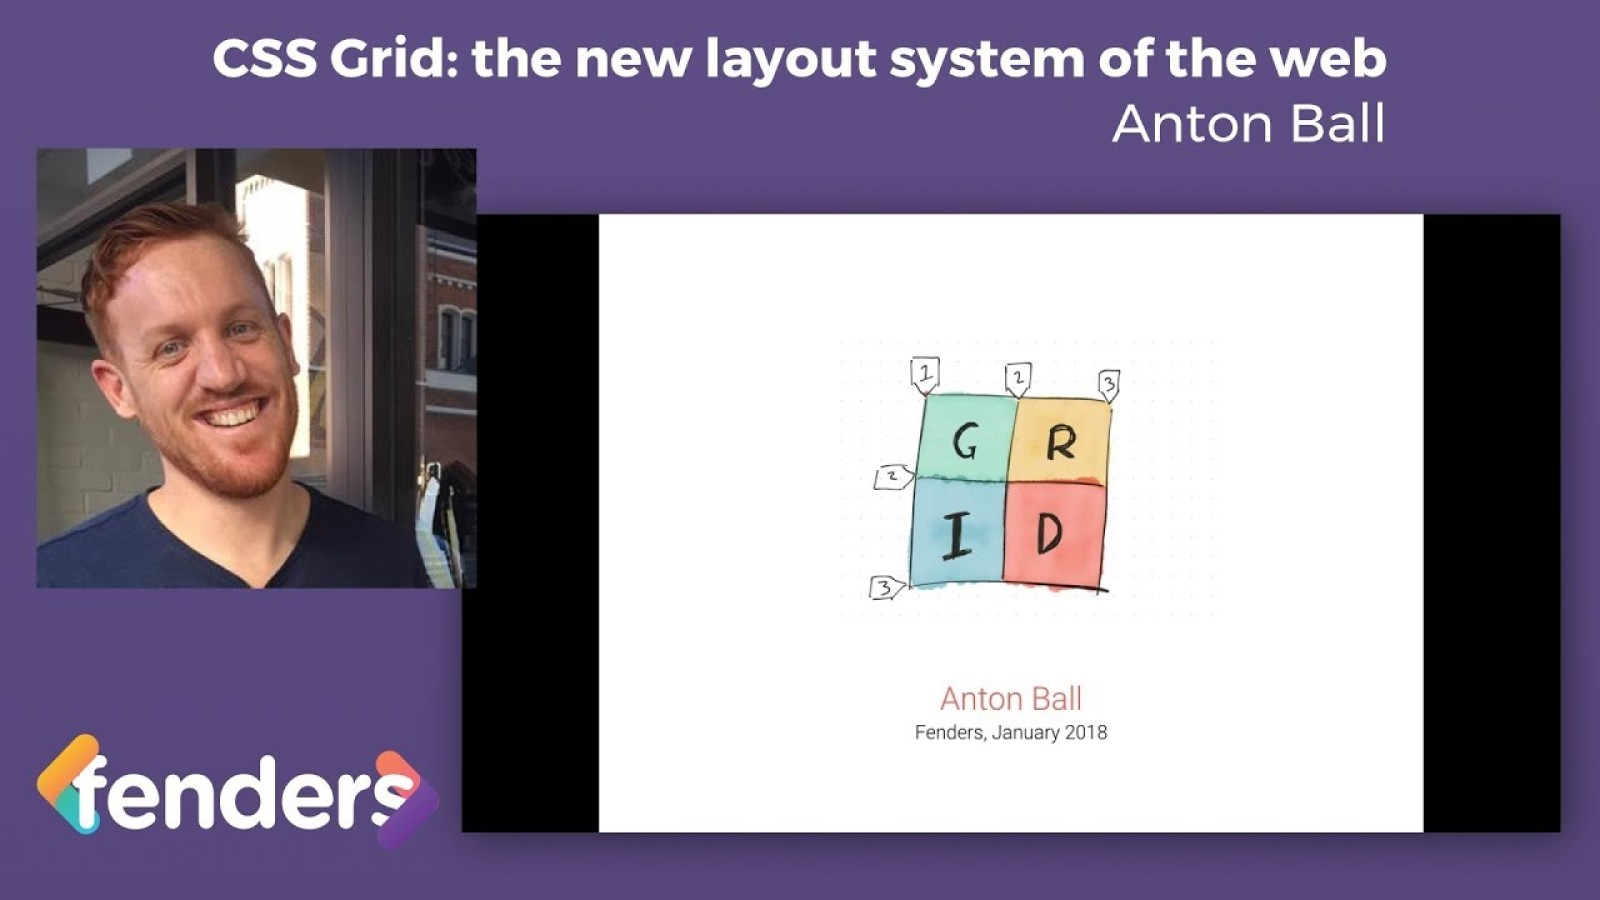 CSS Grid: the new layout system of the web